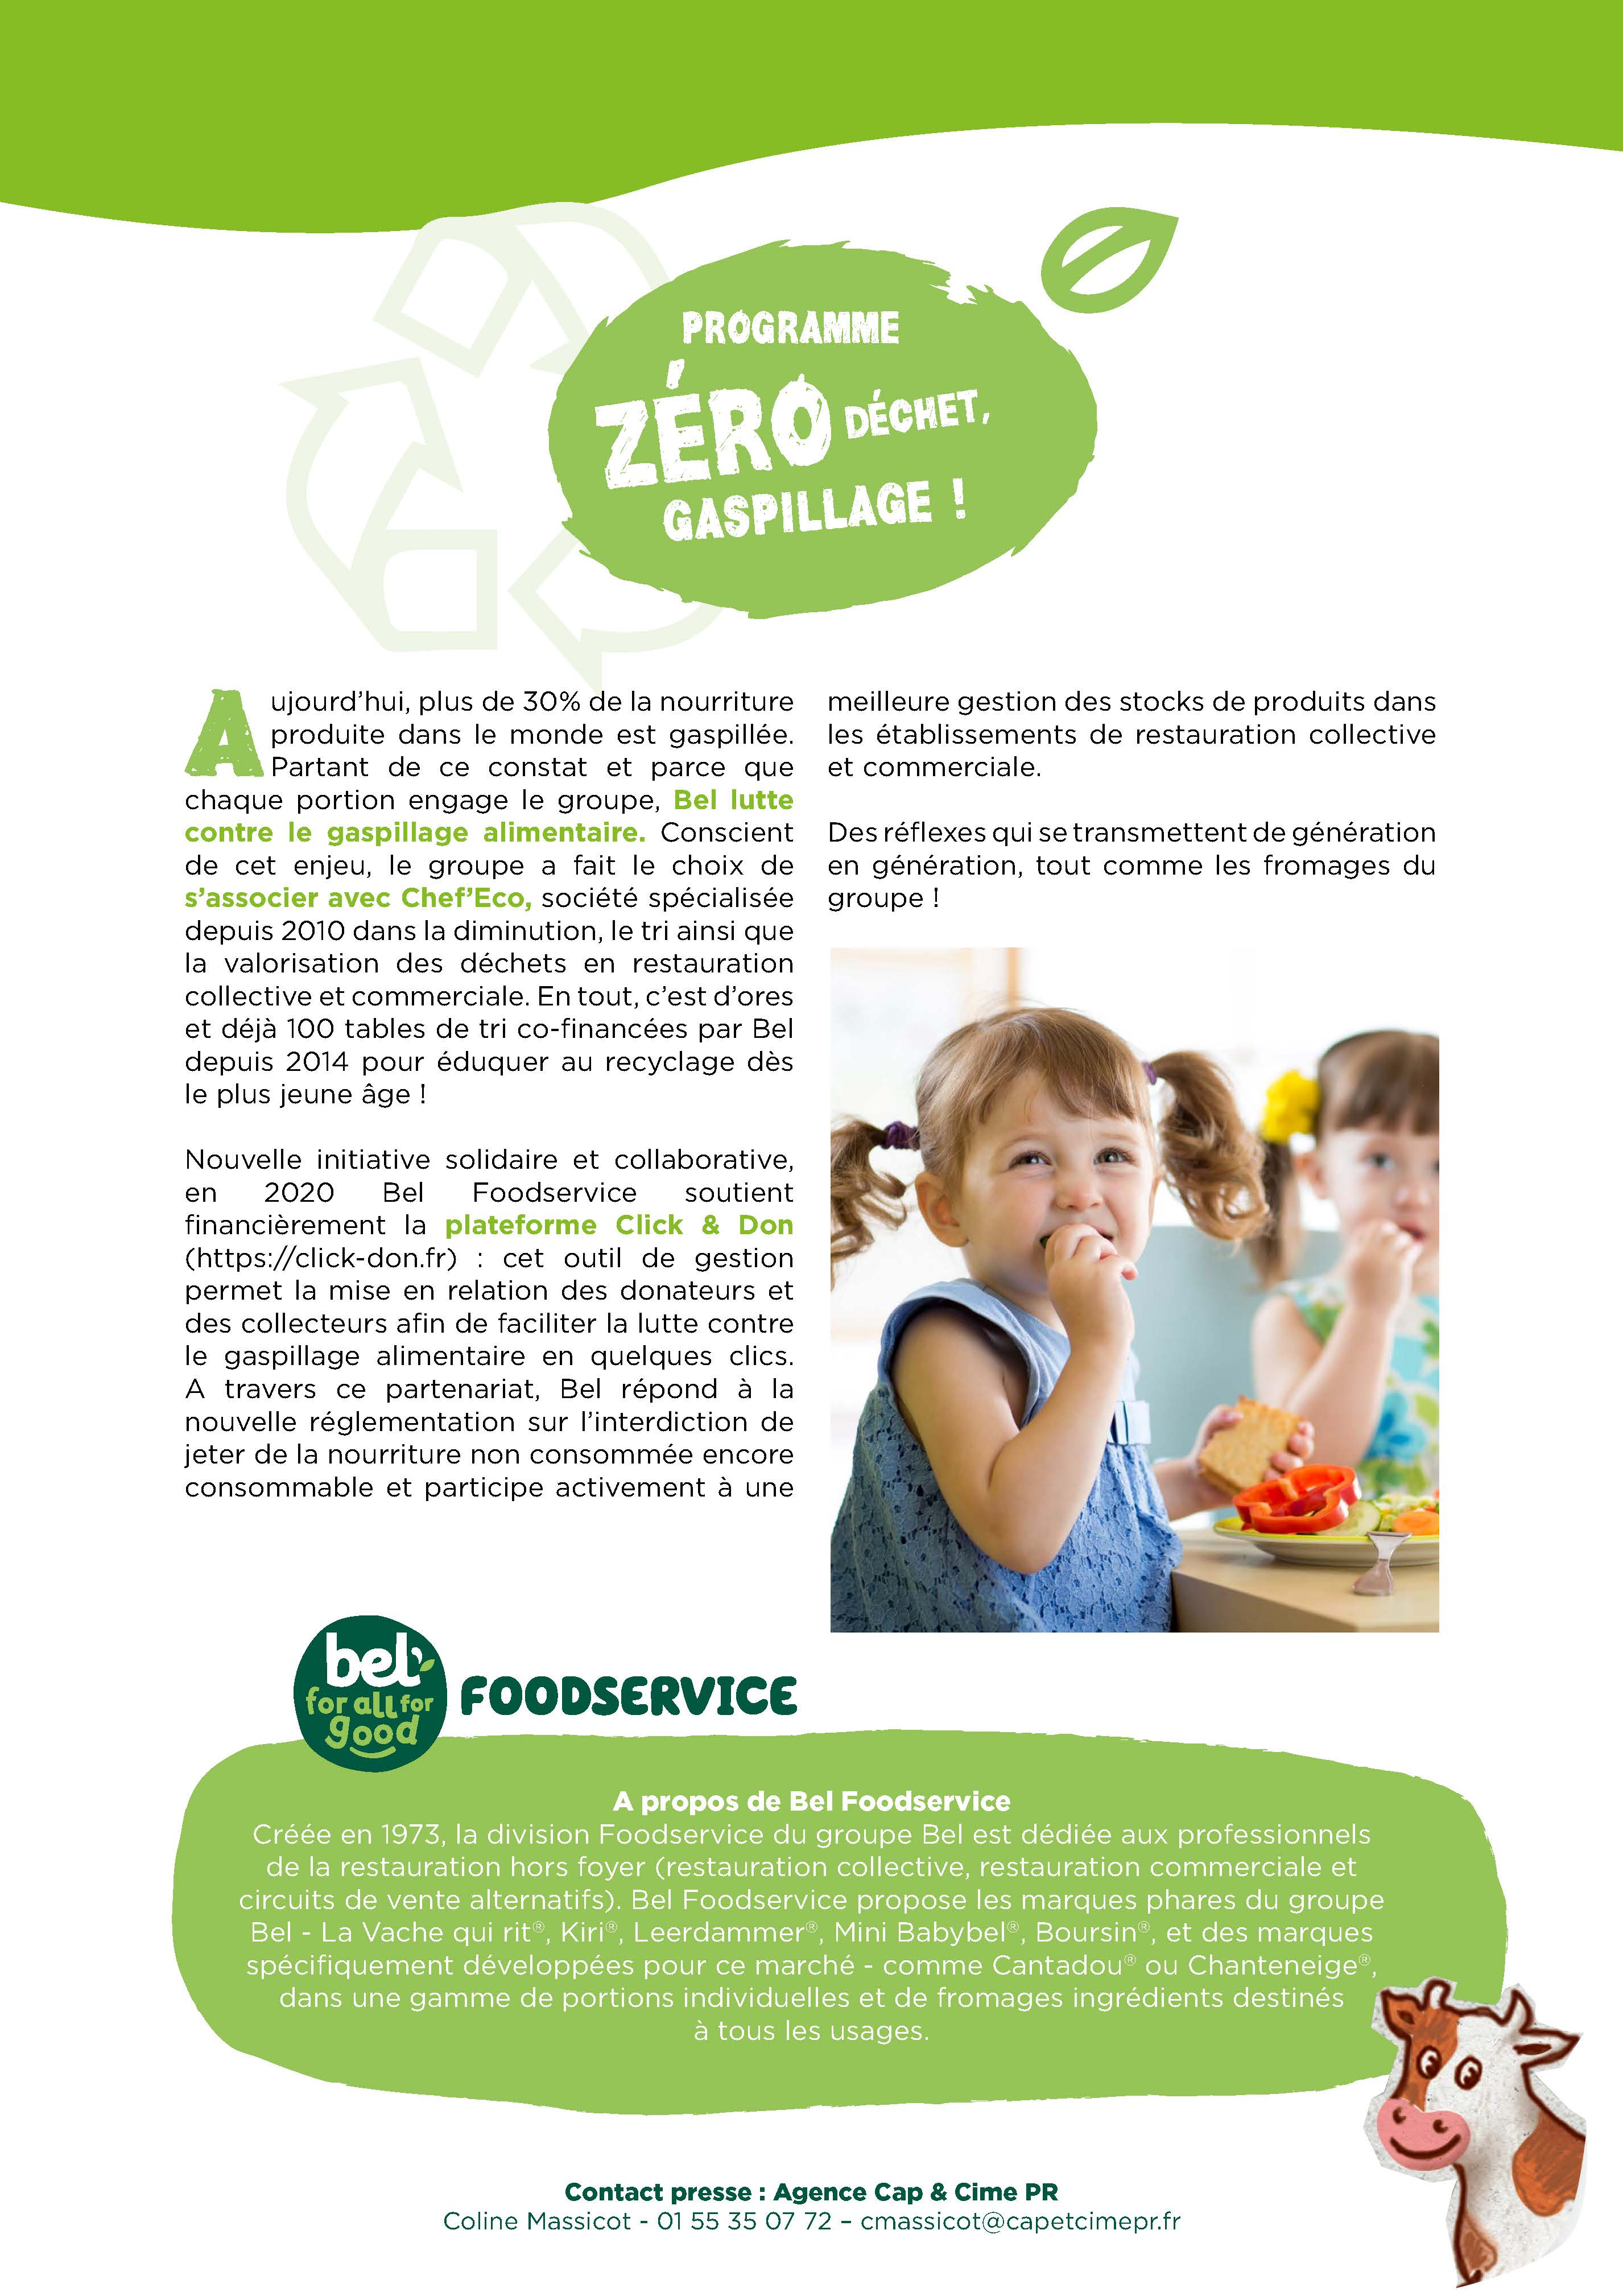 don alimentaire groupe BEL association caritative lutte anti gaspillage alimentaire zero gaspi collecte dons alimentaires